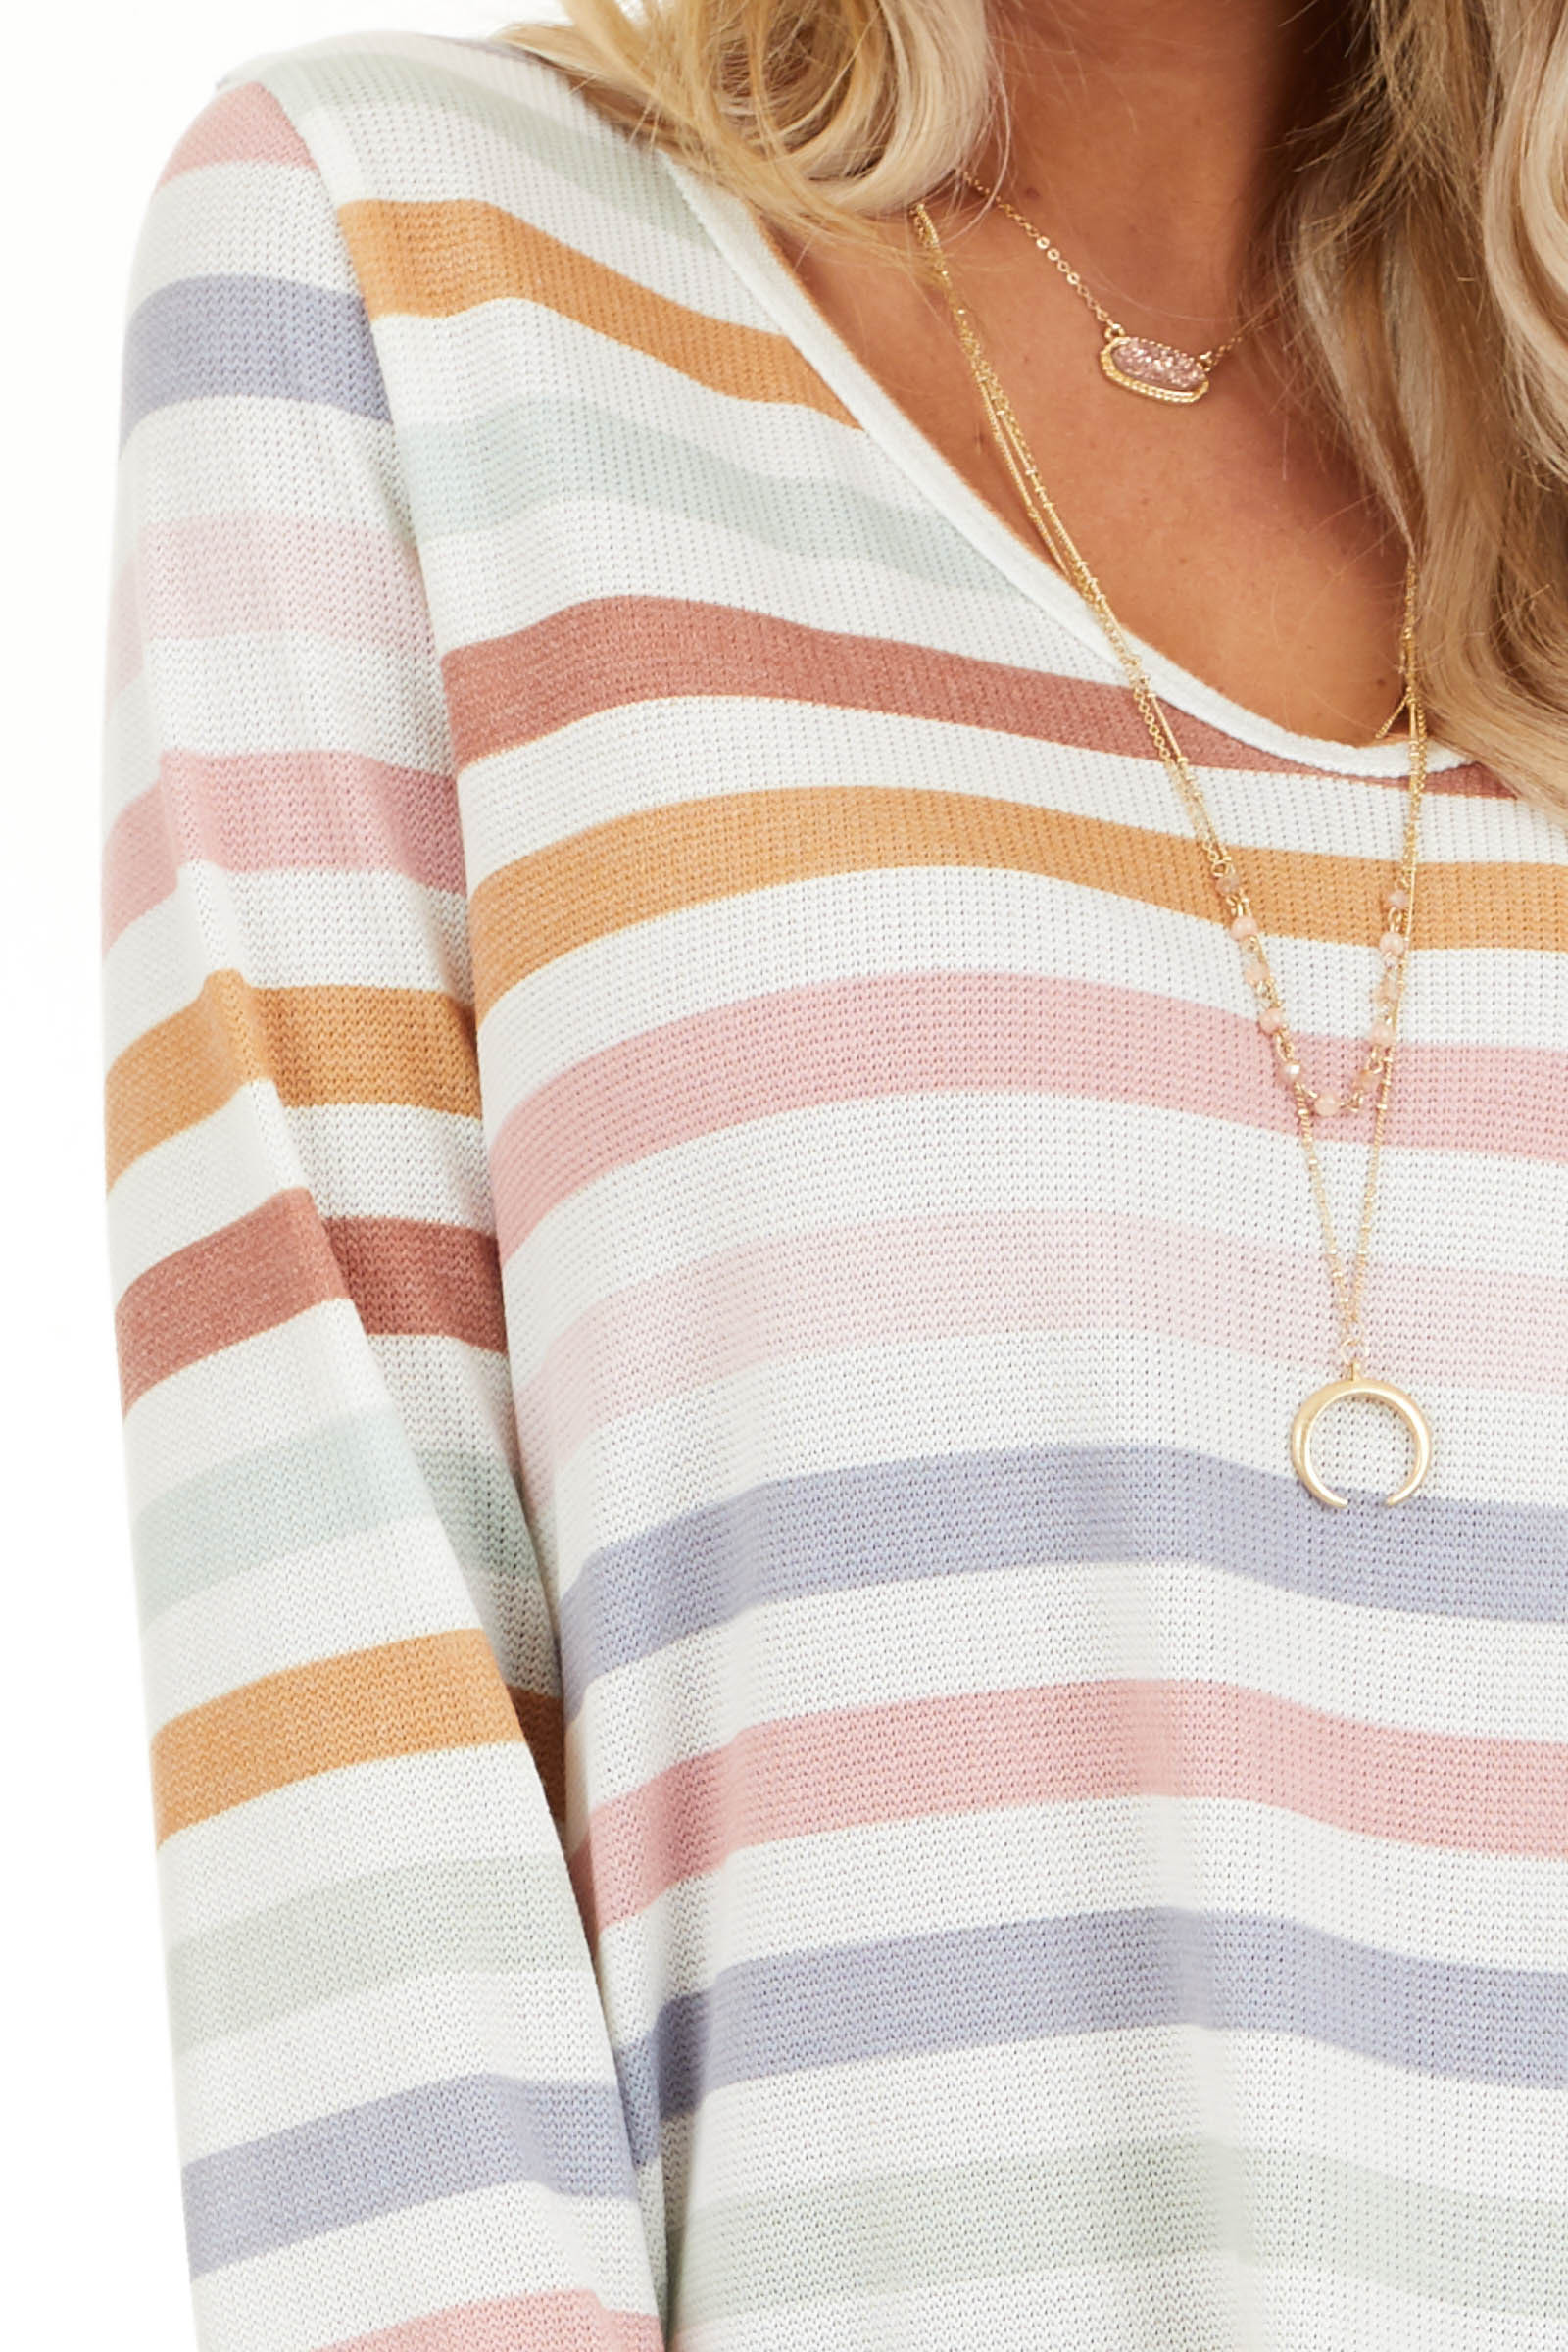 Ivory Multicolor Striped Knit Top with Long Sleeves detail